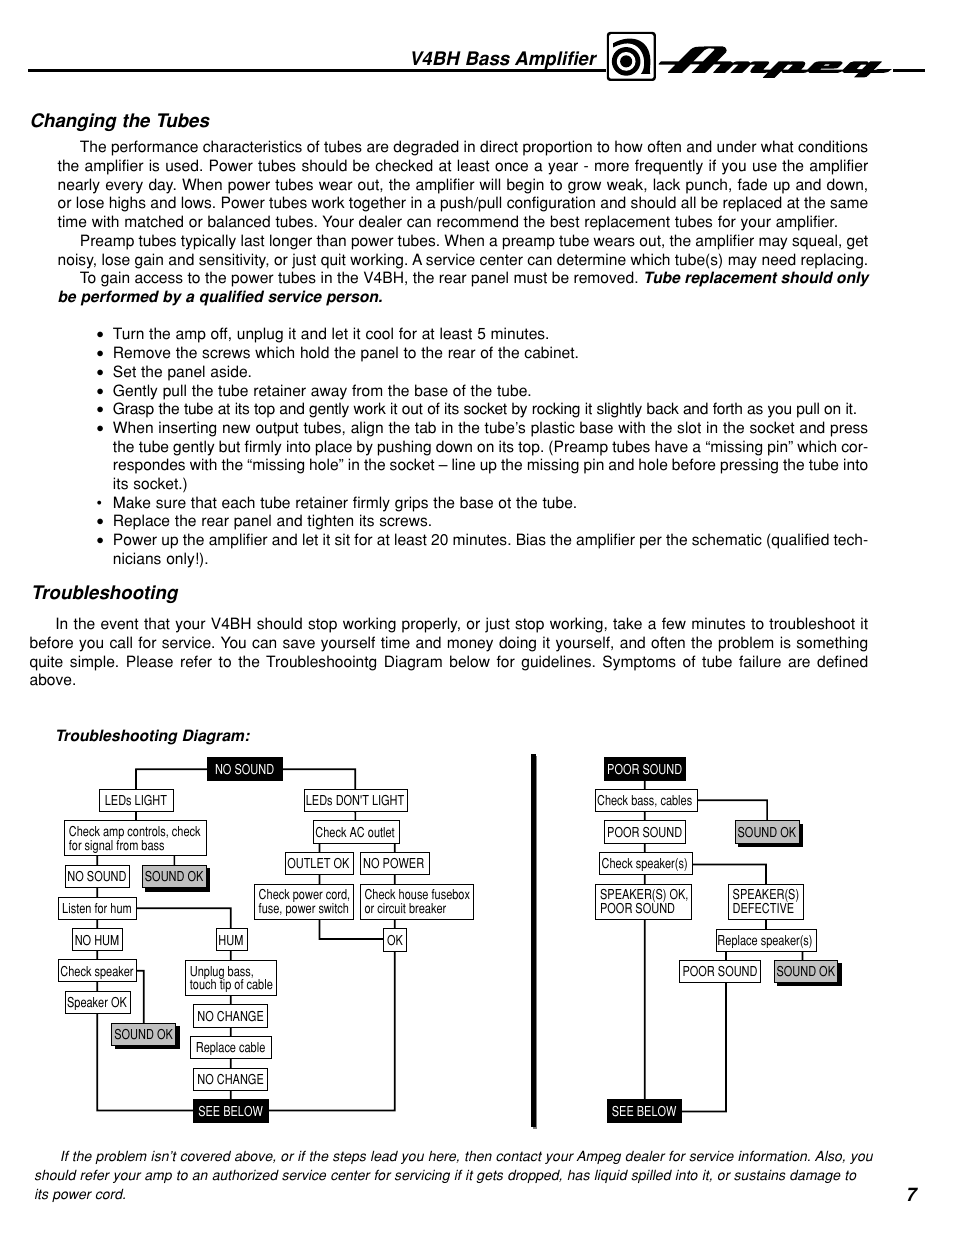 V4bh Bass Amplifier Changing The Tubes Troubleshooting Ampeg Amp Circuit User Manual Page 7 8